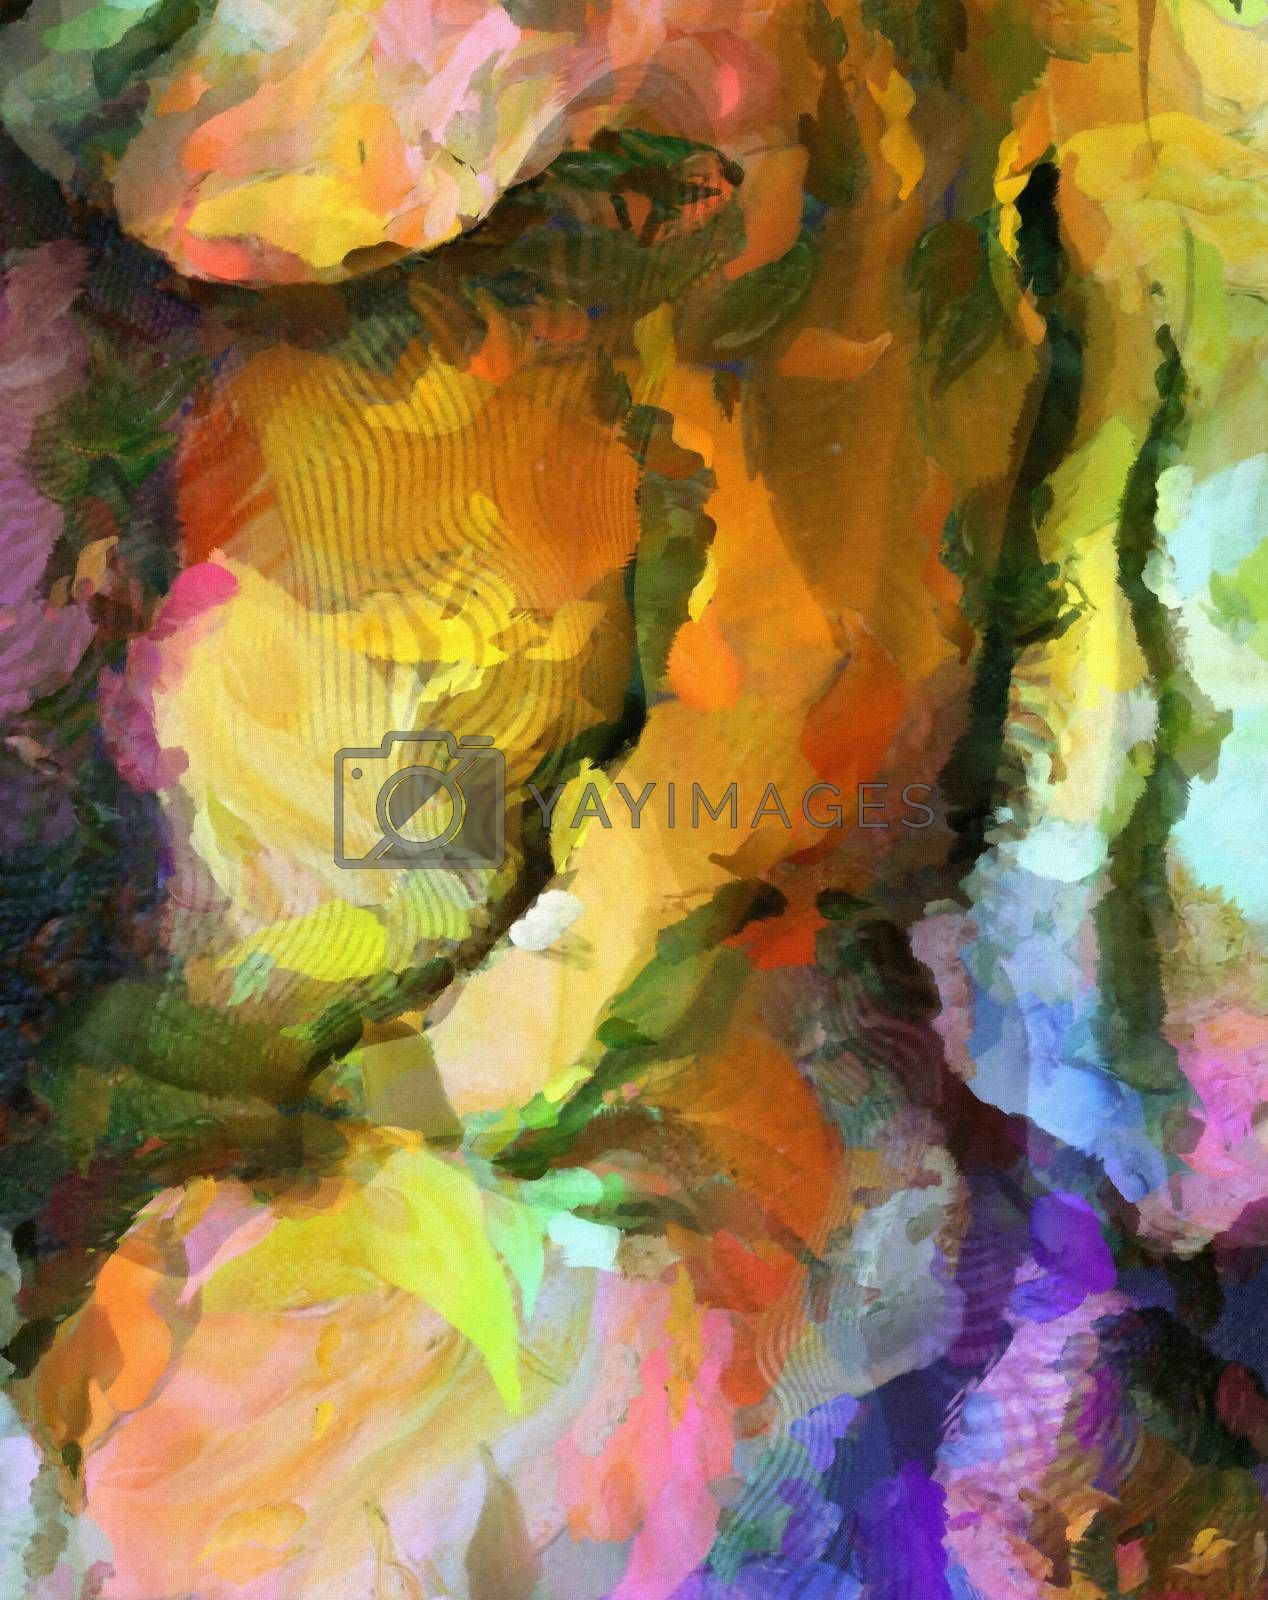 Colorful abstract painting. Vivid colors. 3D rendering